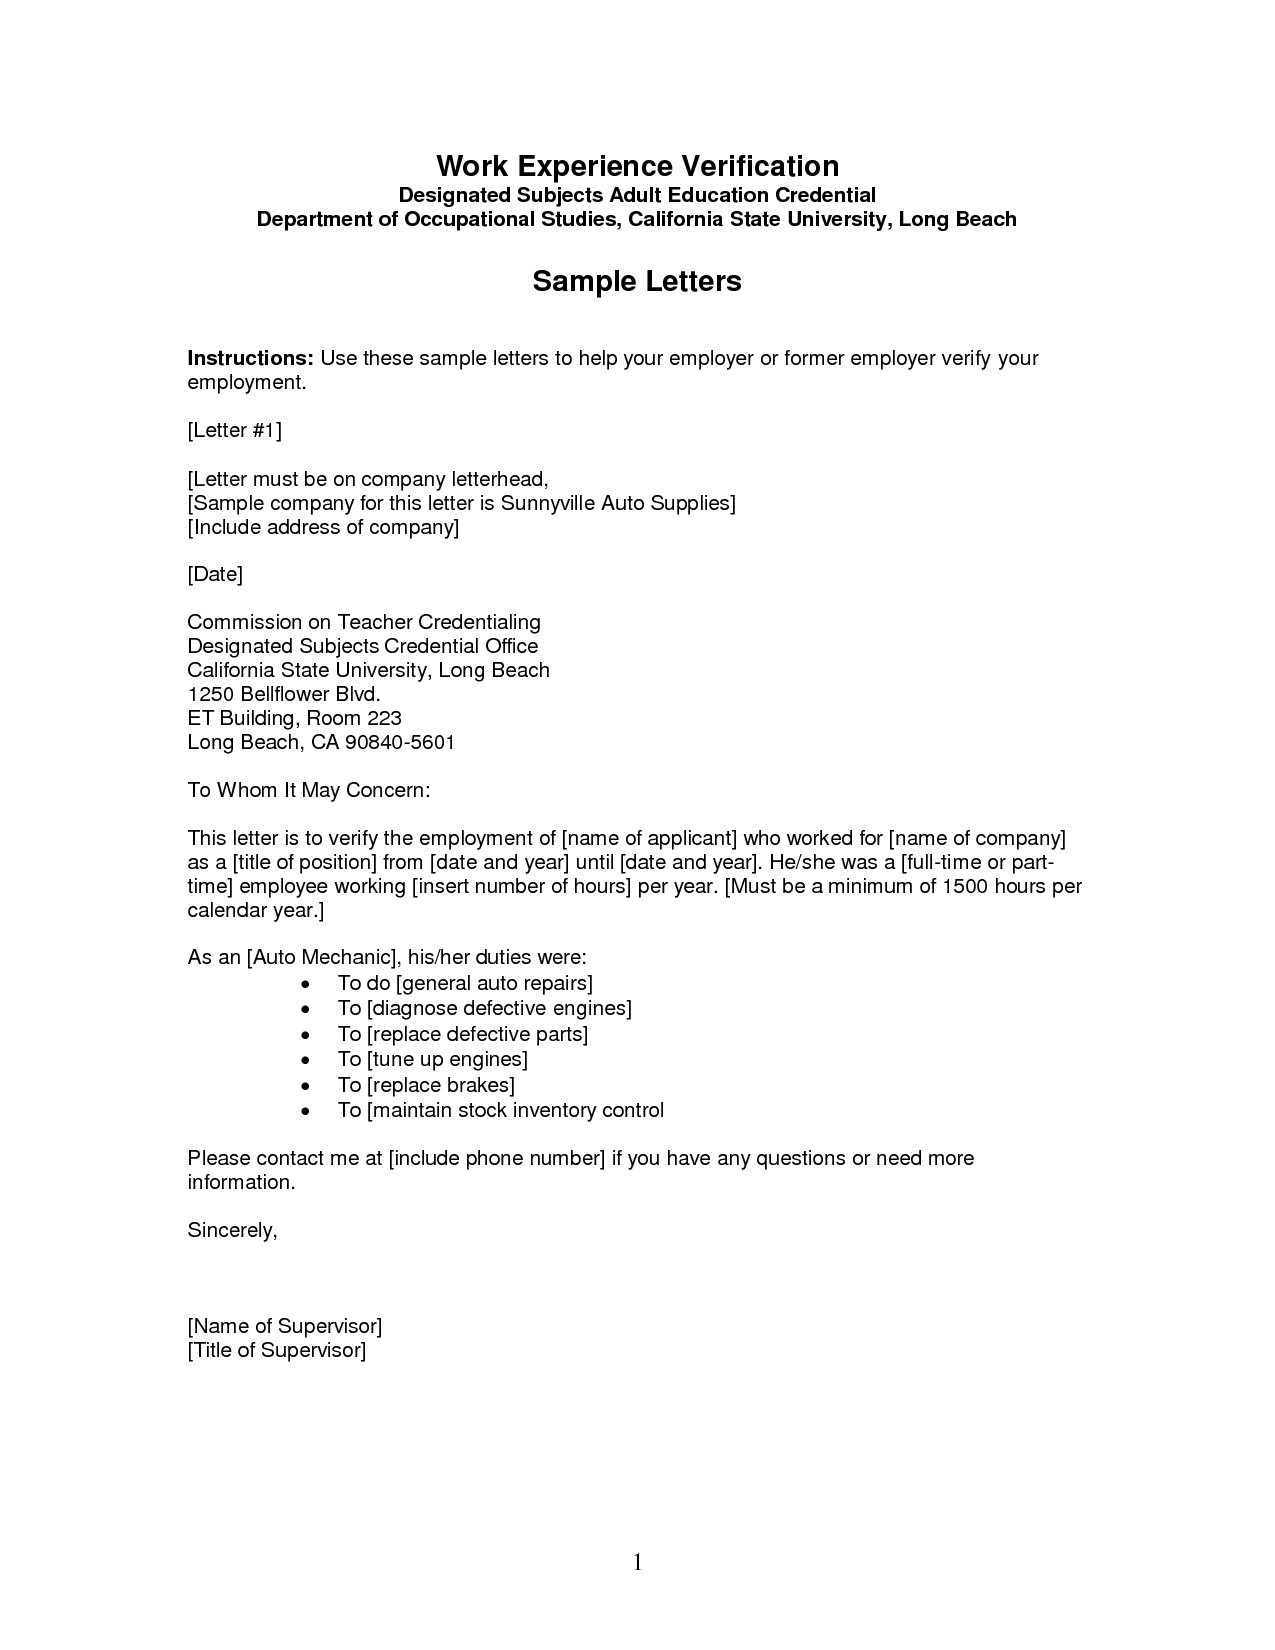 Self Employment Verification Letter Template - Employment Certificate format with Salary Fresh 6 Proof In E